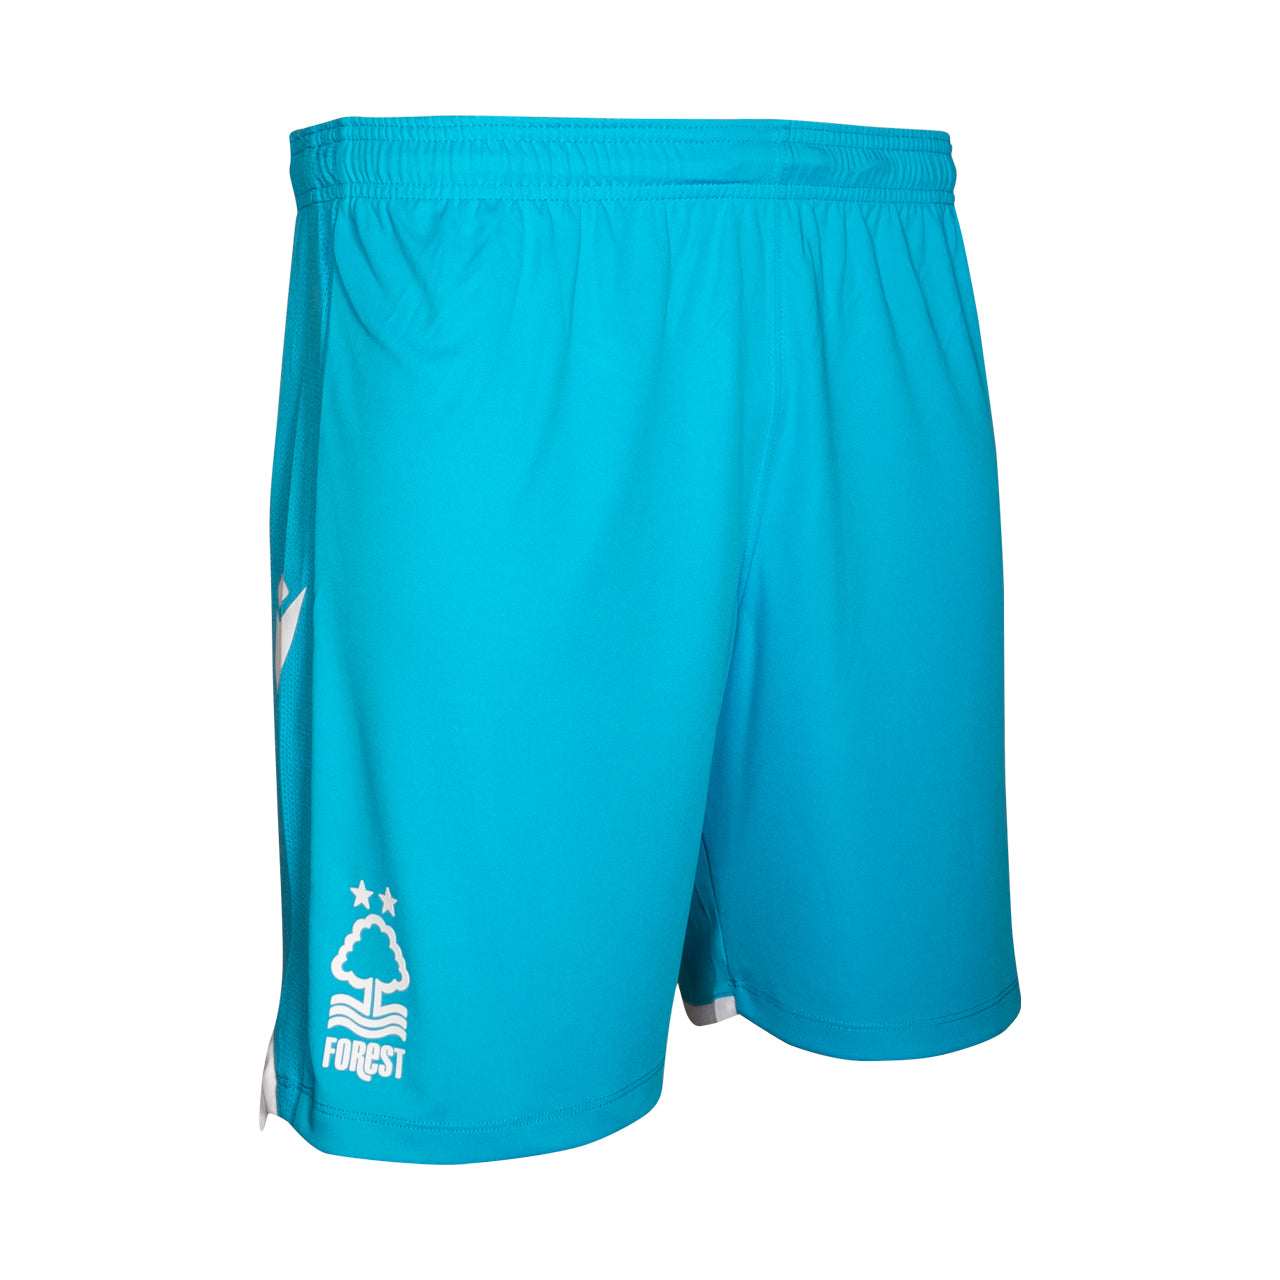 NFFC Junior Blue Goalkeeper Shorts 2019/20